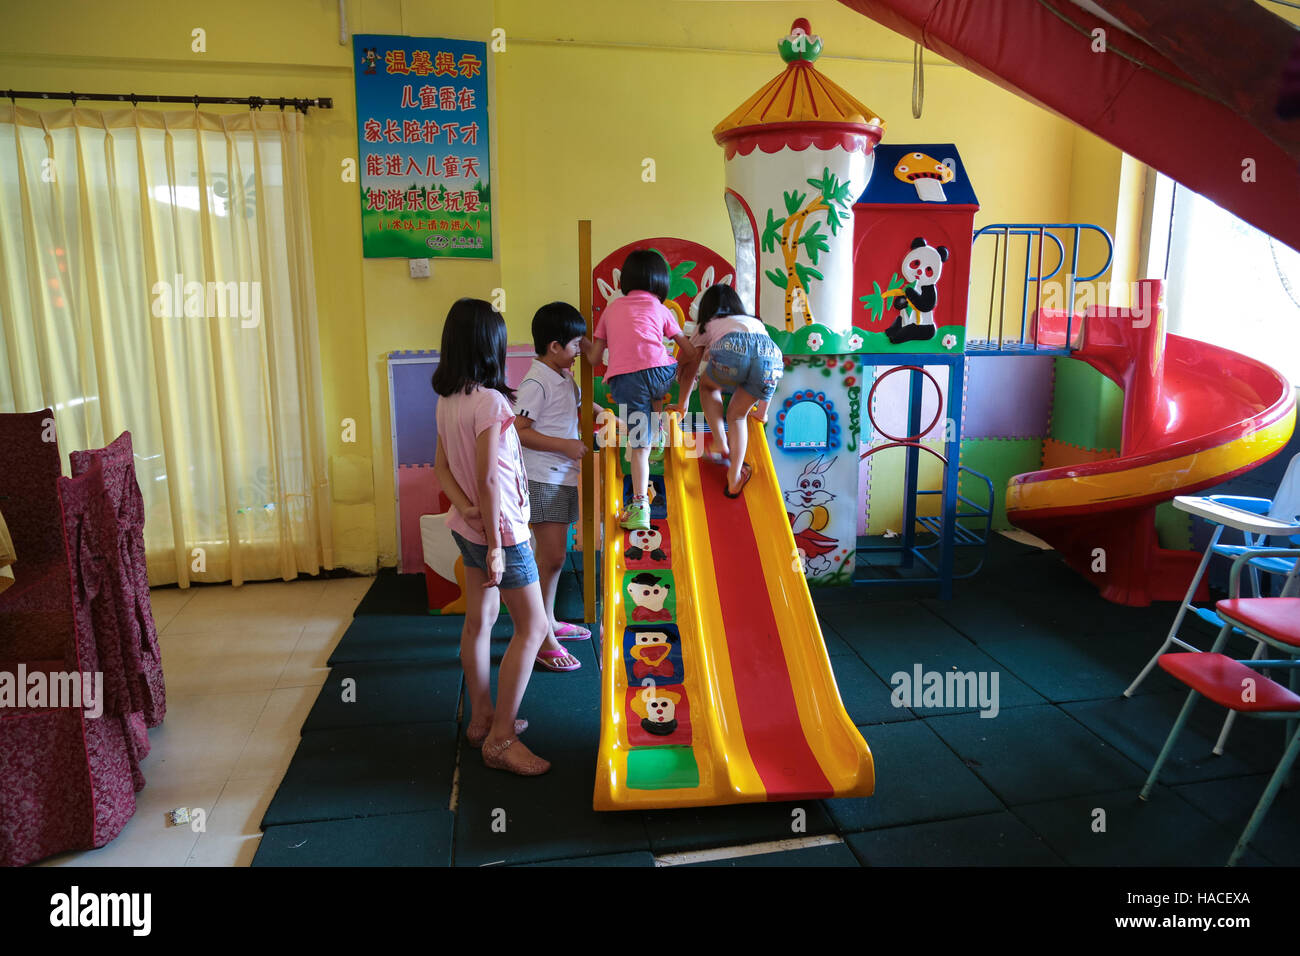 Playscape stock photos playscape stock images alamy for China garden restaurant detroit mi